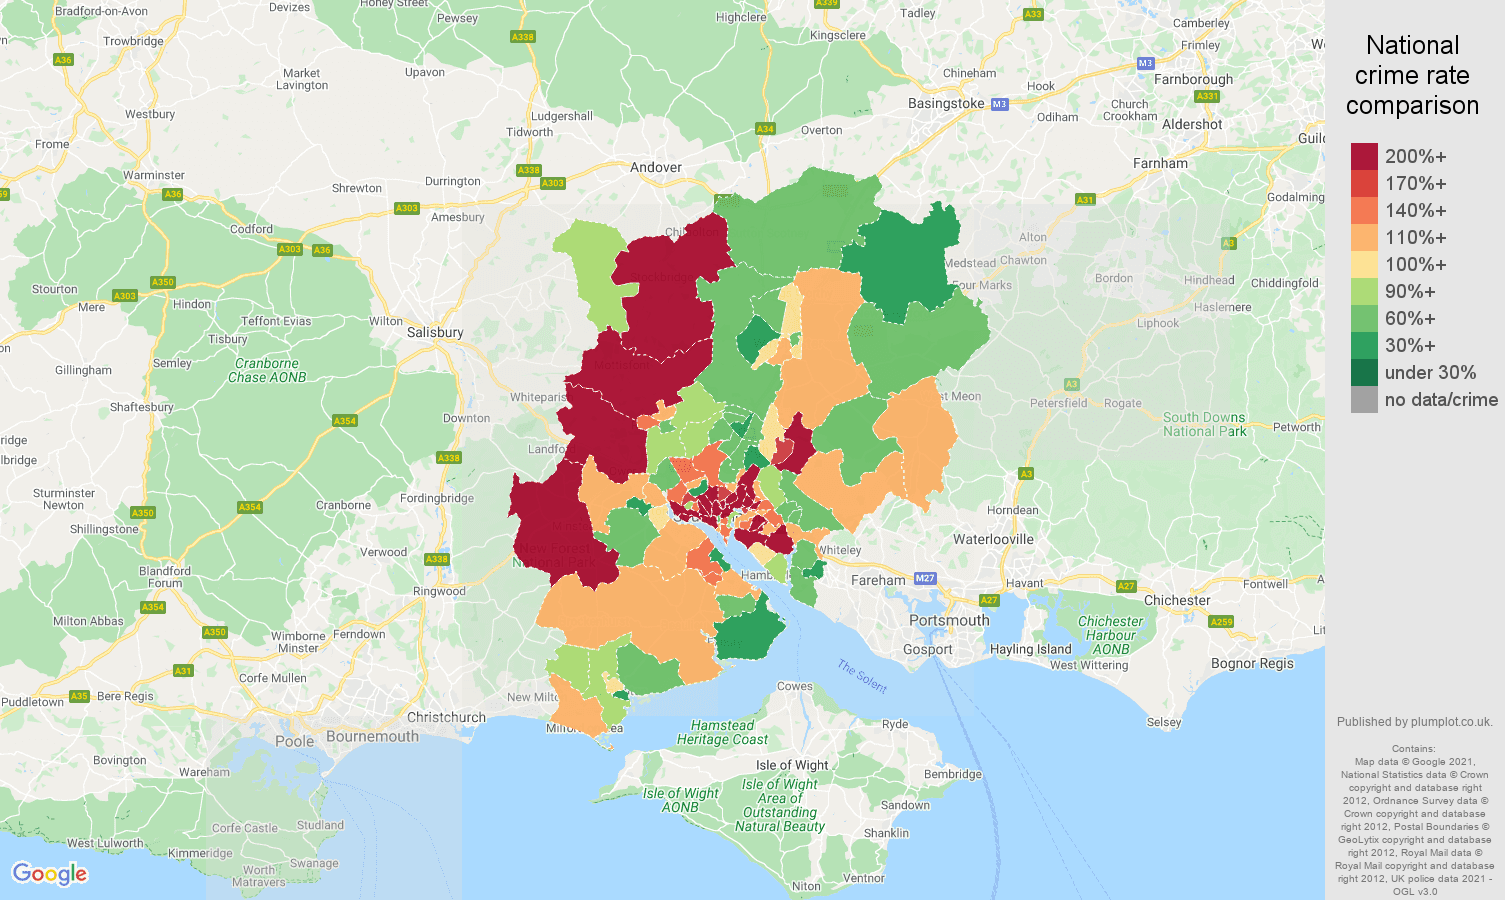 Southampton burglary crime rate comparison map